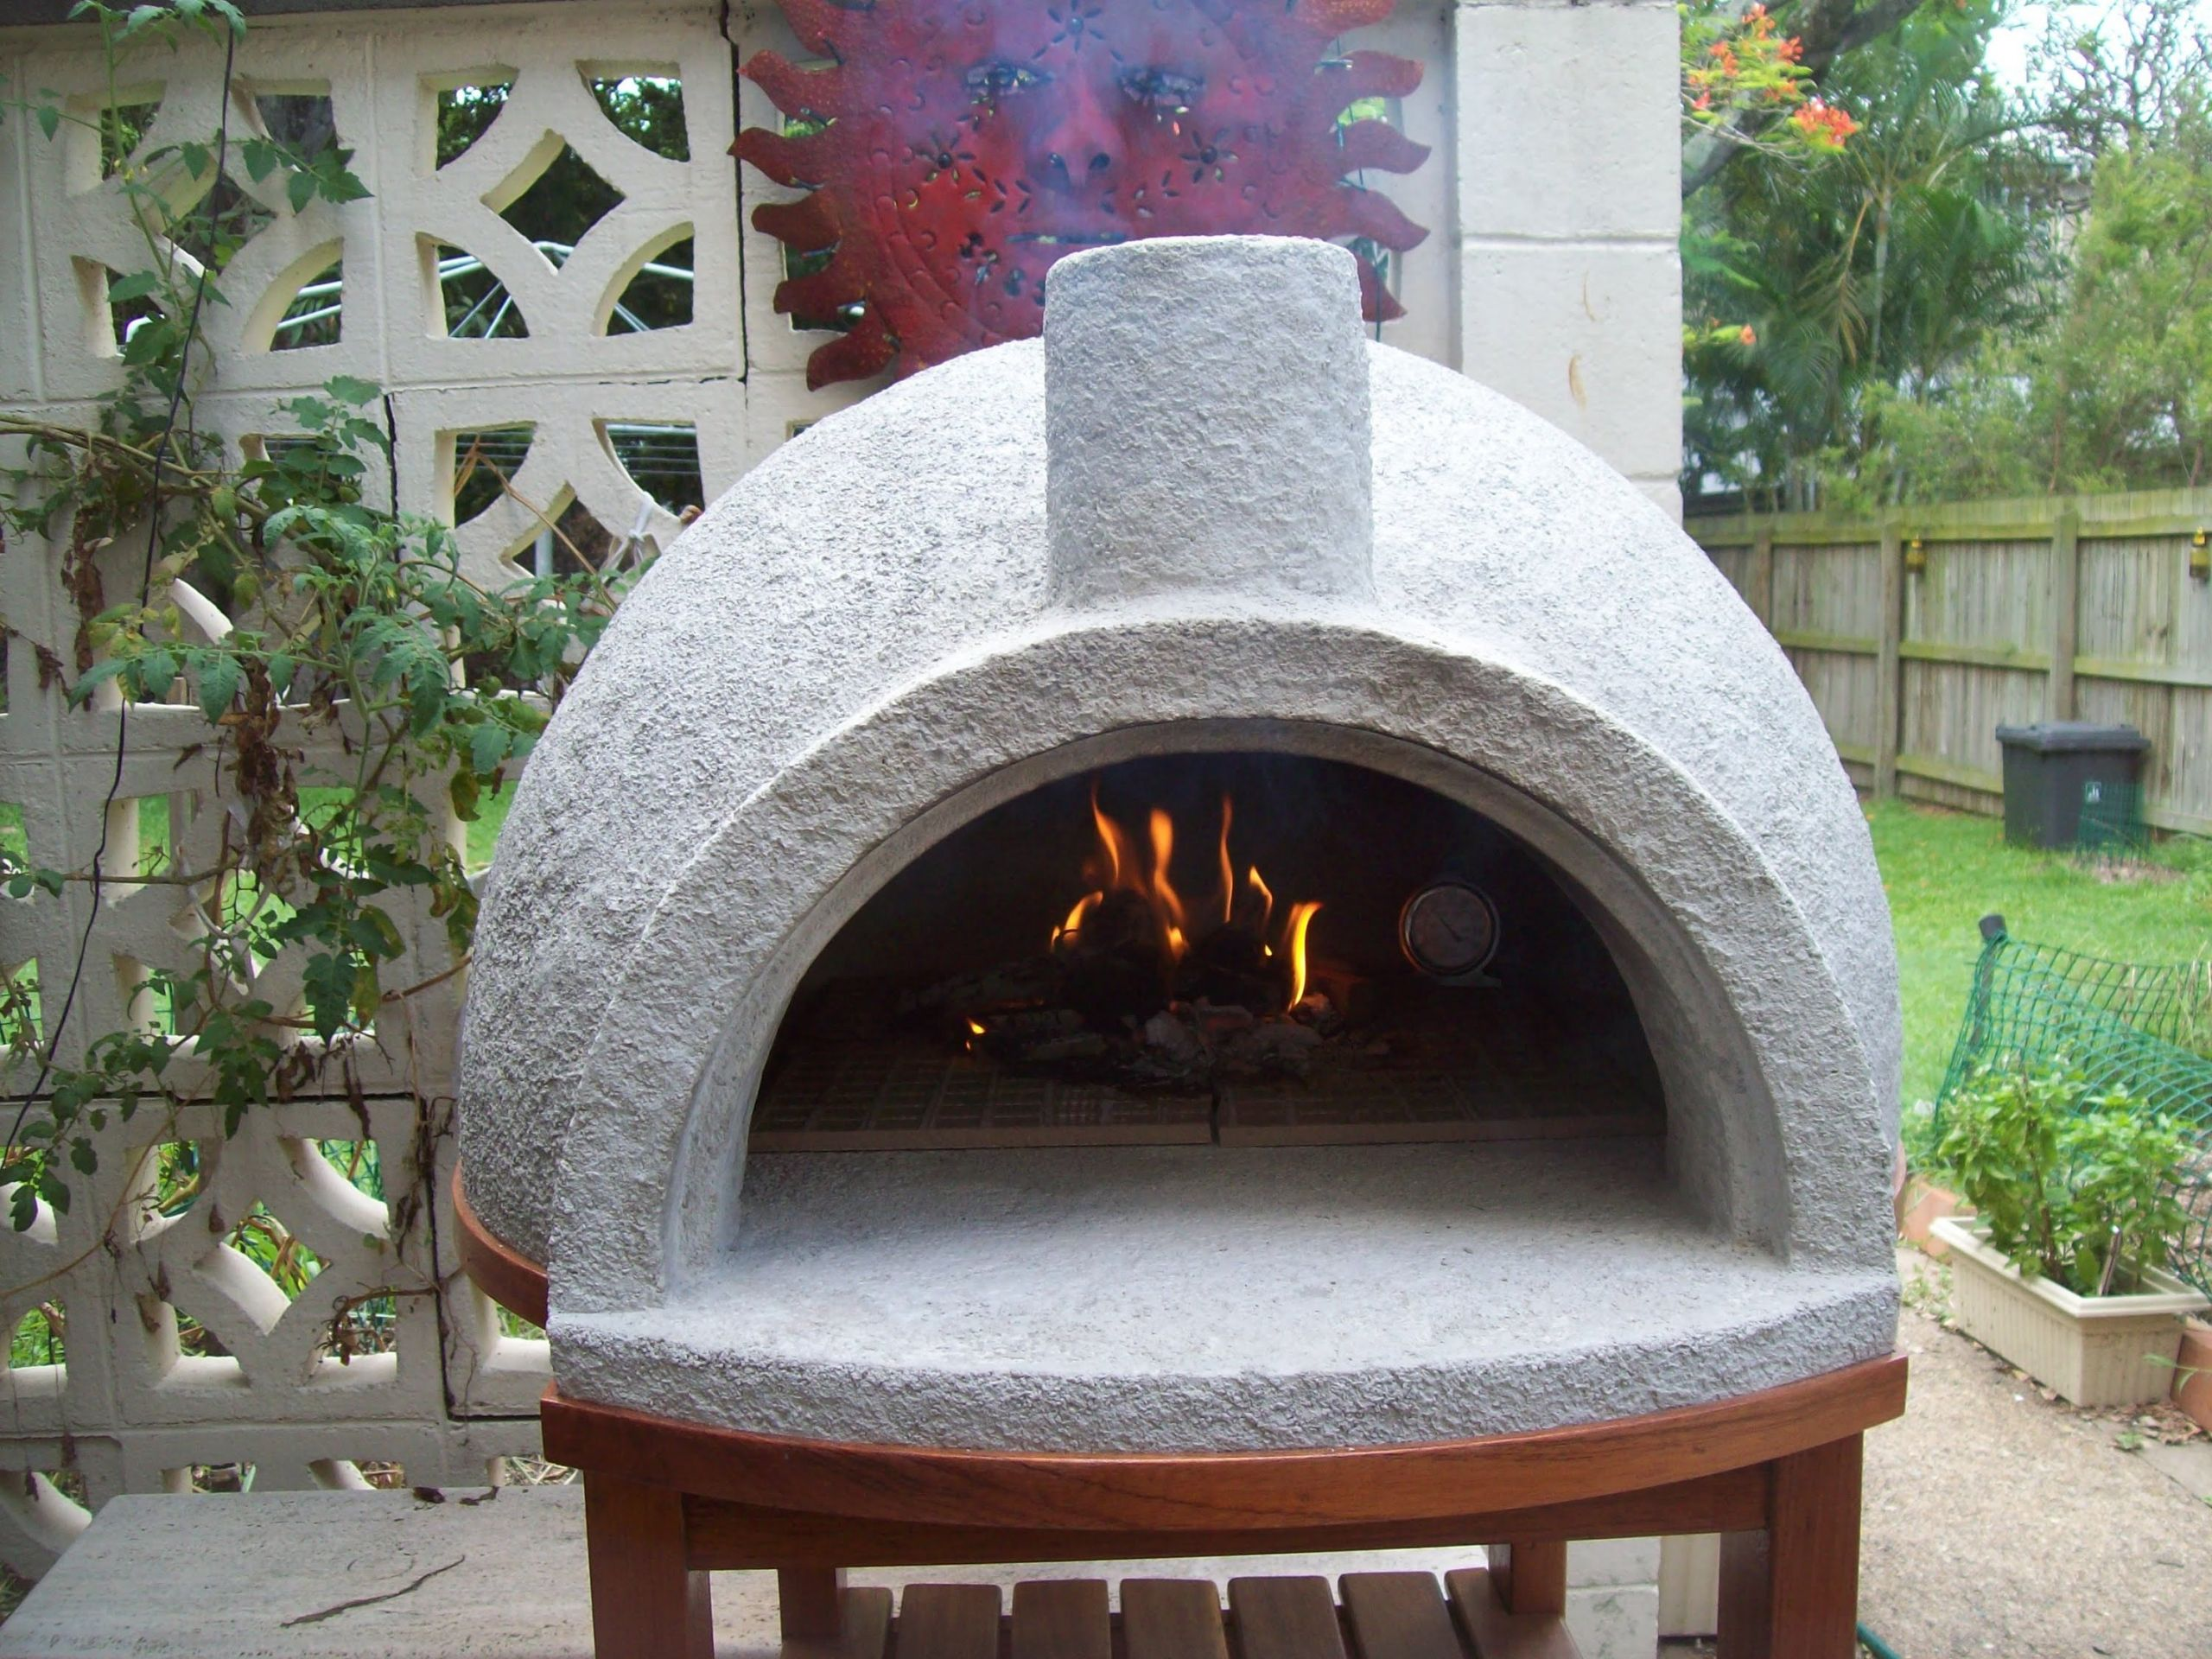 Outdoor Pizza Oven Plans DIY  vermiculite pizza oven